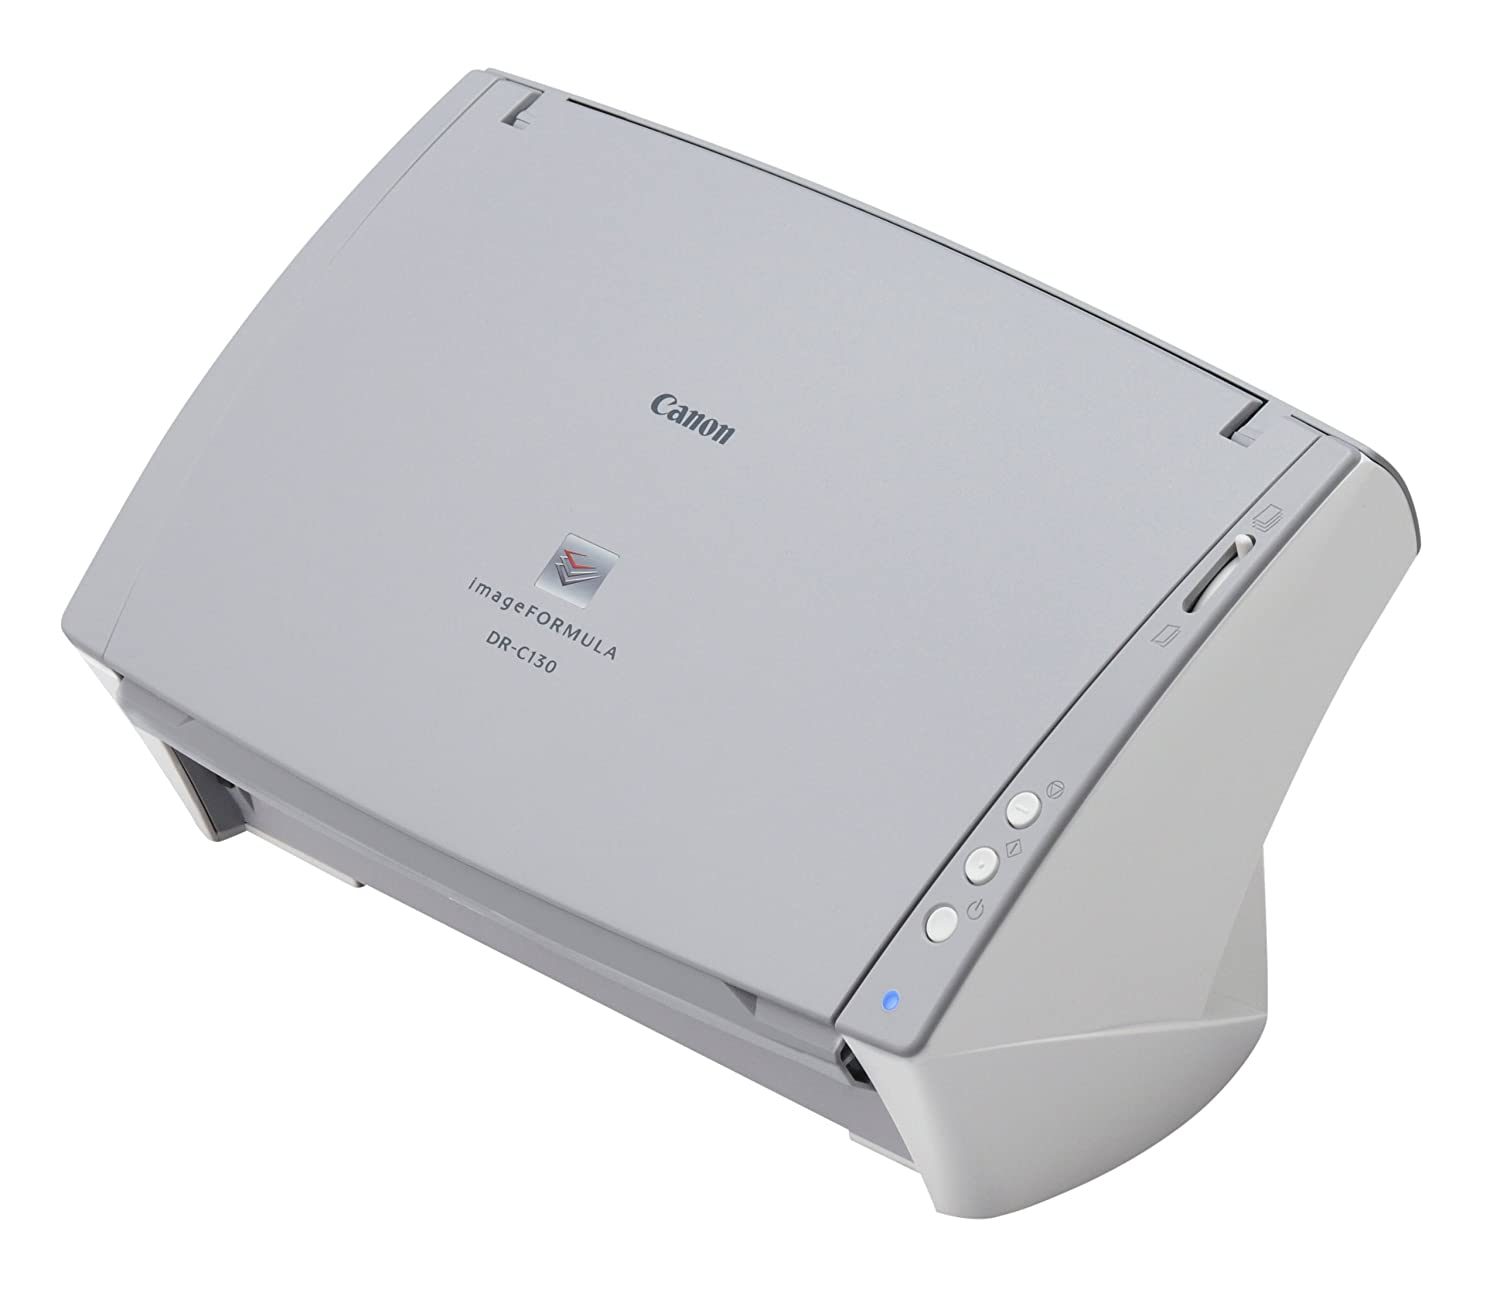 Buy Canon Imageformula Dr C130 Document Scanner Online At Comutronics Electronics Qa Low Prices In India Reviews Ratings